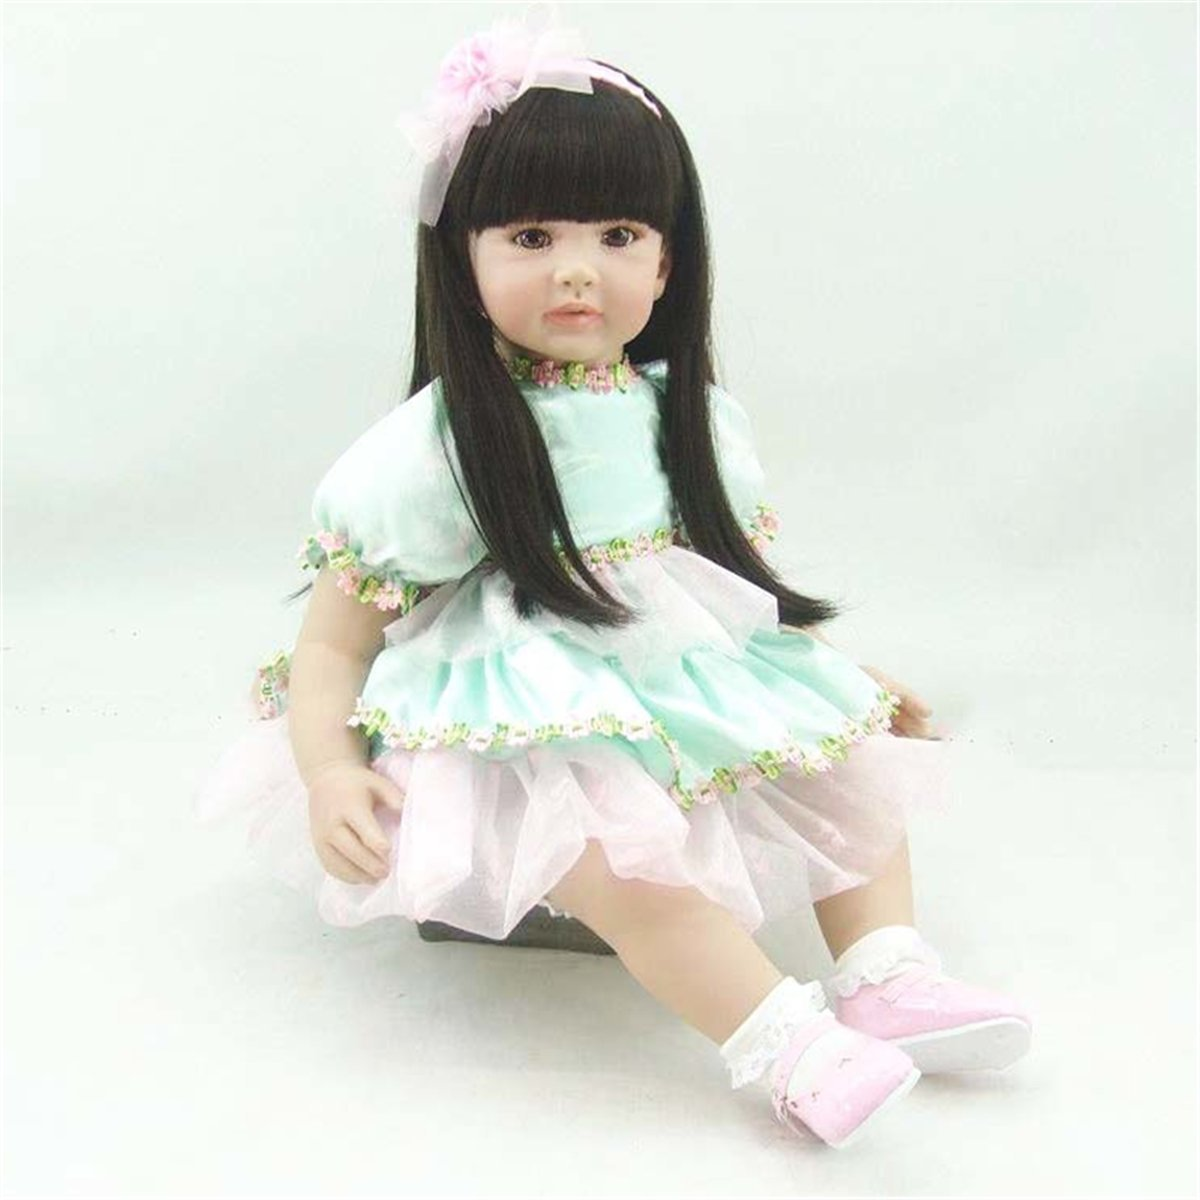 Reborn Baby Doll Realistic Baby Dolls Vinyl Silicone Babies 55cm 22inch Doll for Children's Gift Beautiful Princess Dress Girl кукла 44271926101 usa berenguer reborn baby doll